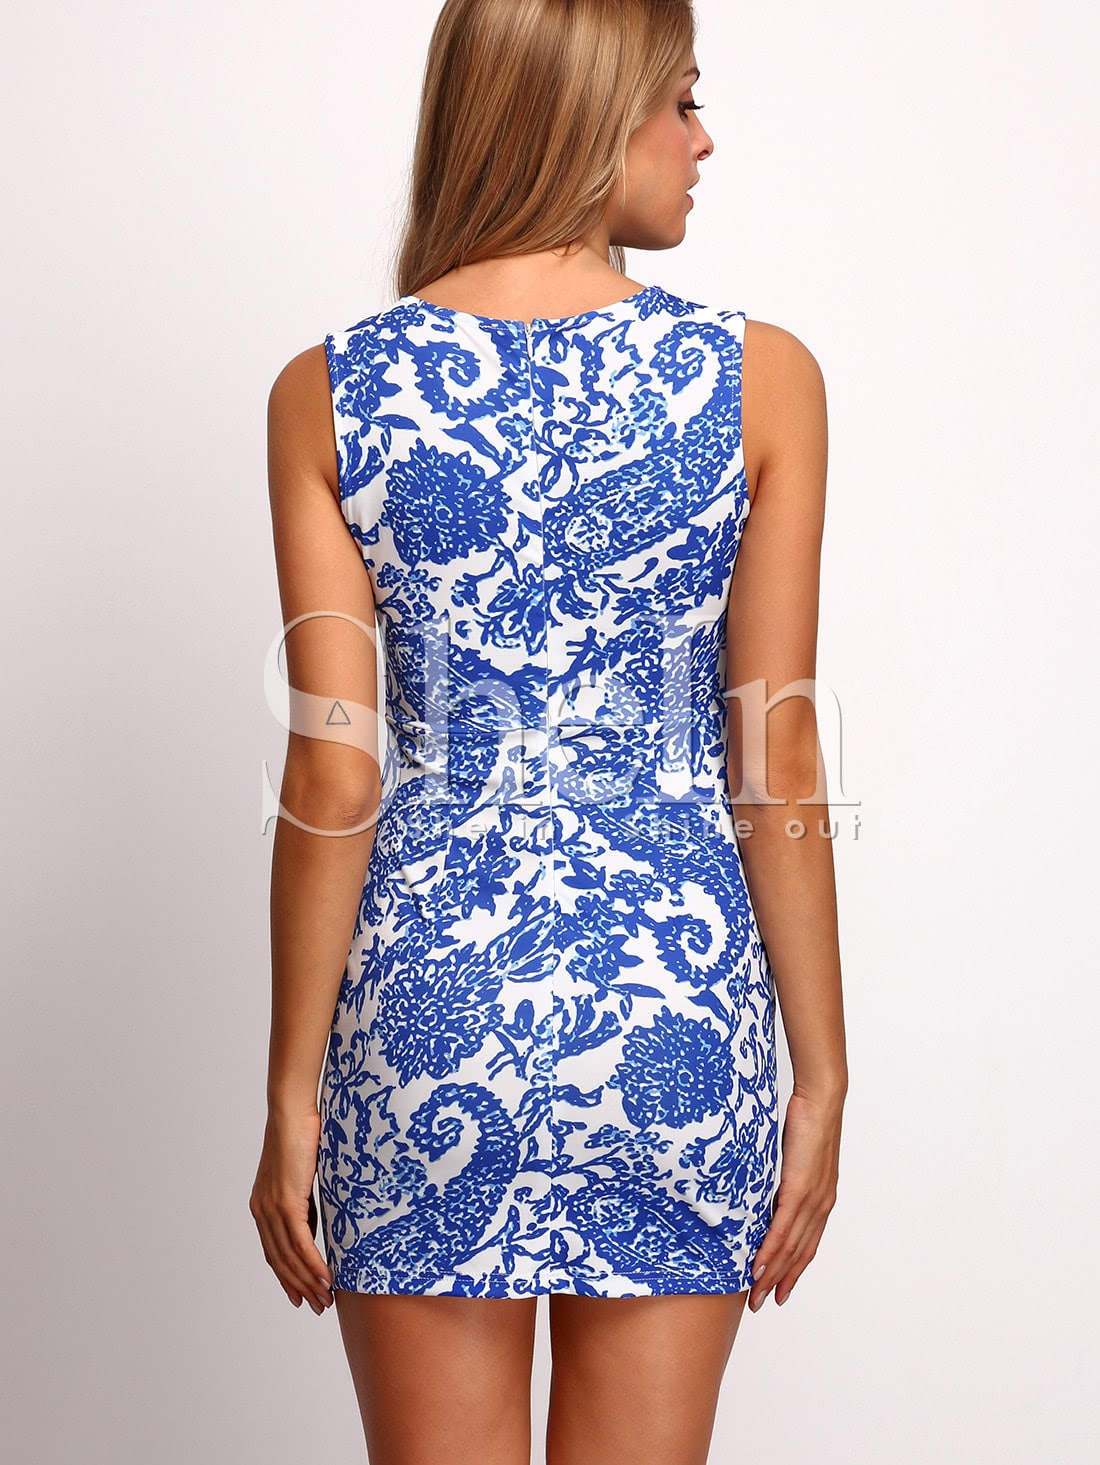 Suppliers china bodycon pockets buy where dresses with leopard print